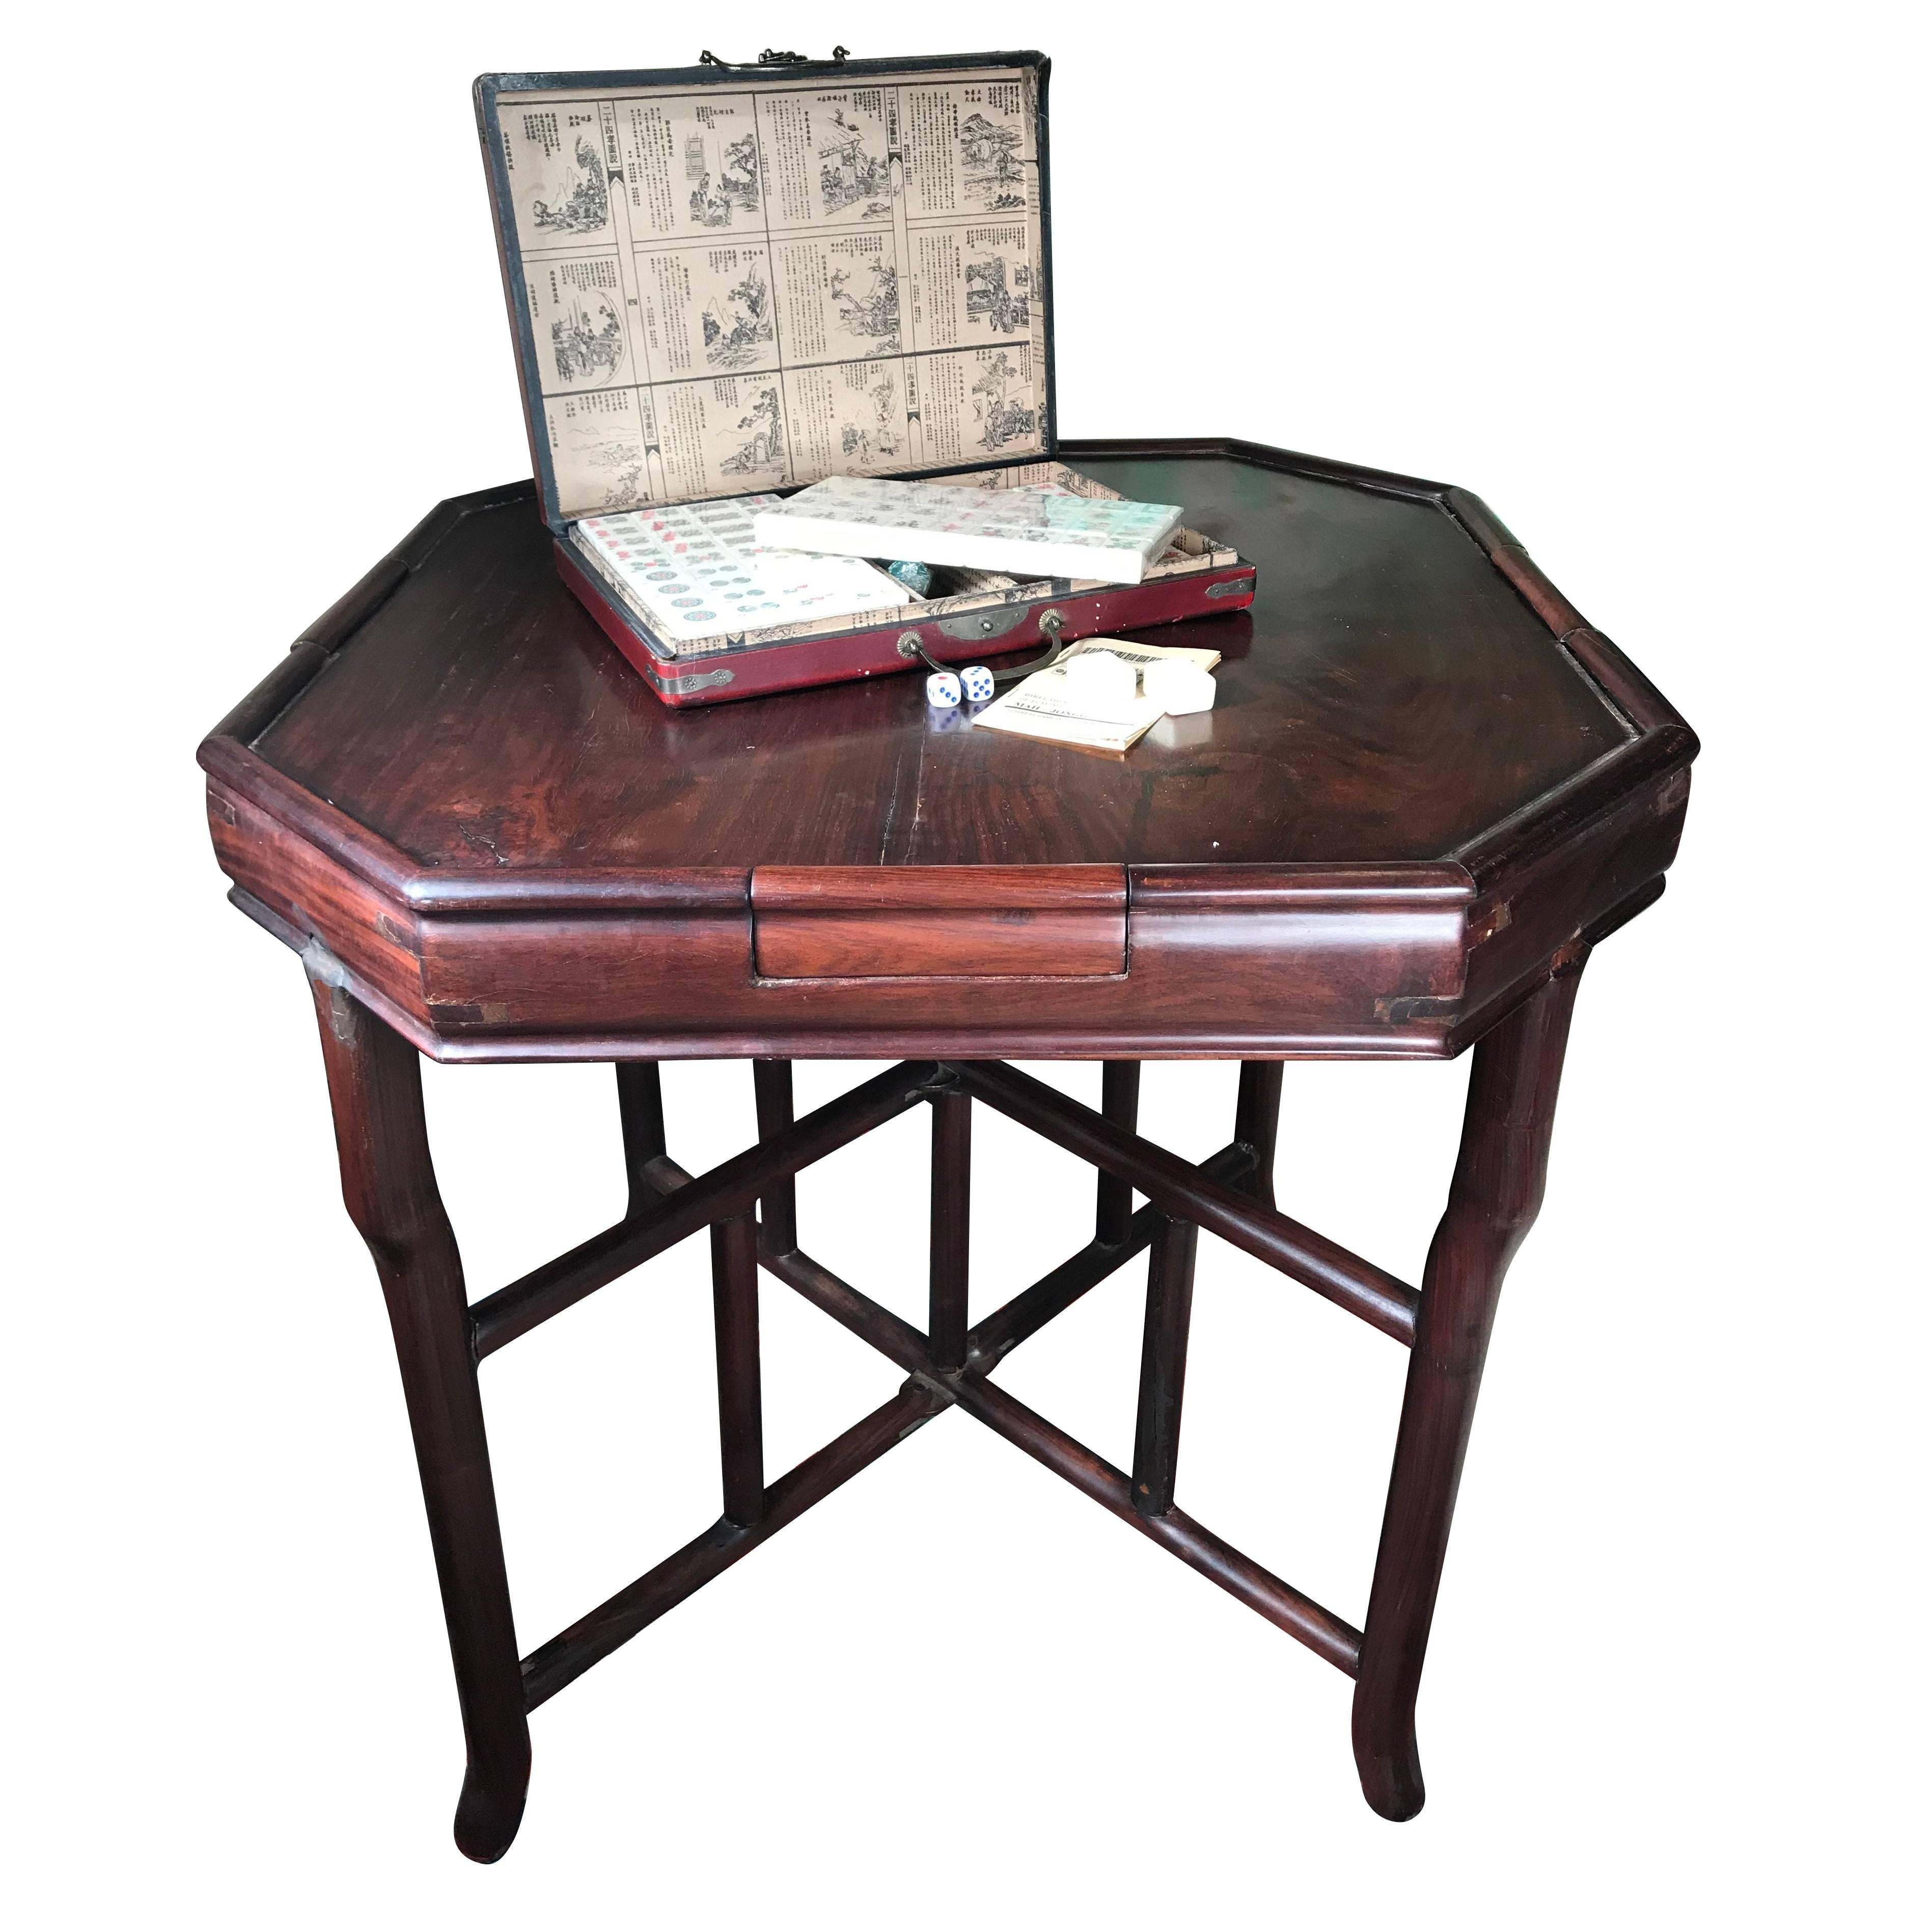 Chinese Antique Gaming Table With Vintage Game, Qing Dynasty, 19th Century  For Sale